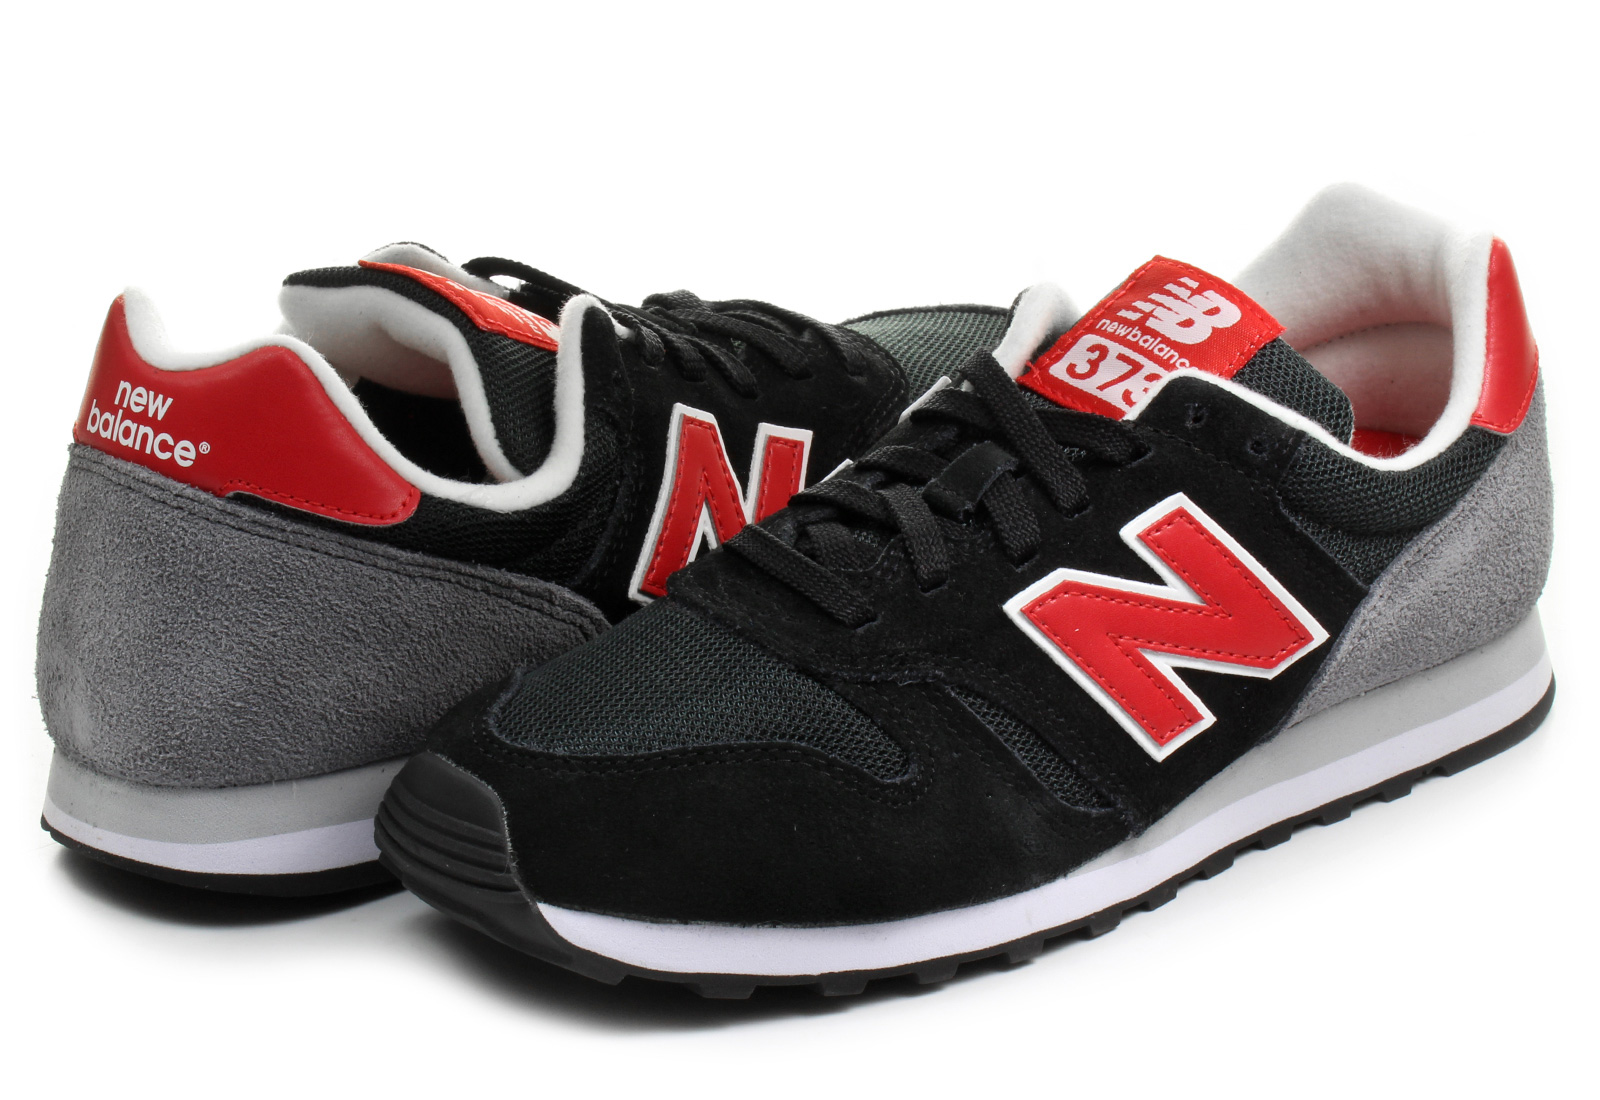 New Balance Shoes - Ml373 - ML373BLR - Online shop for sneakers ... 5689e306cf